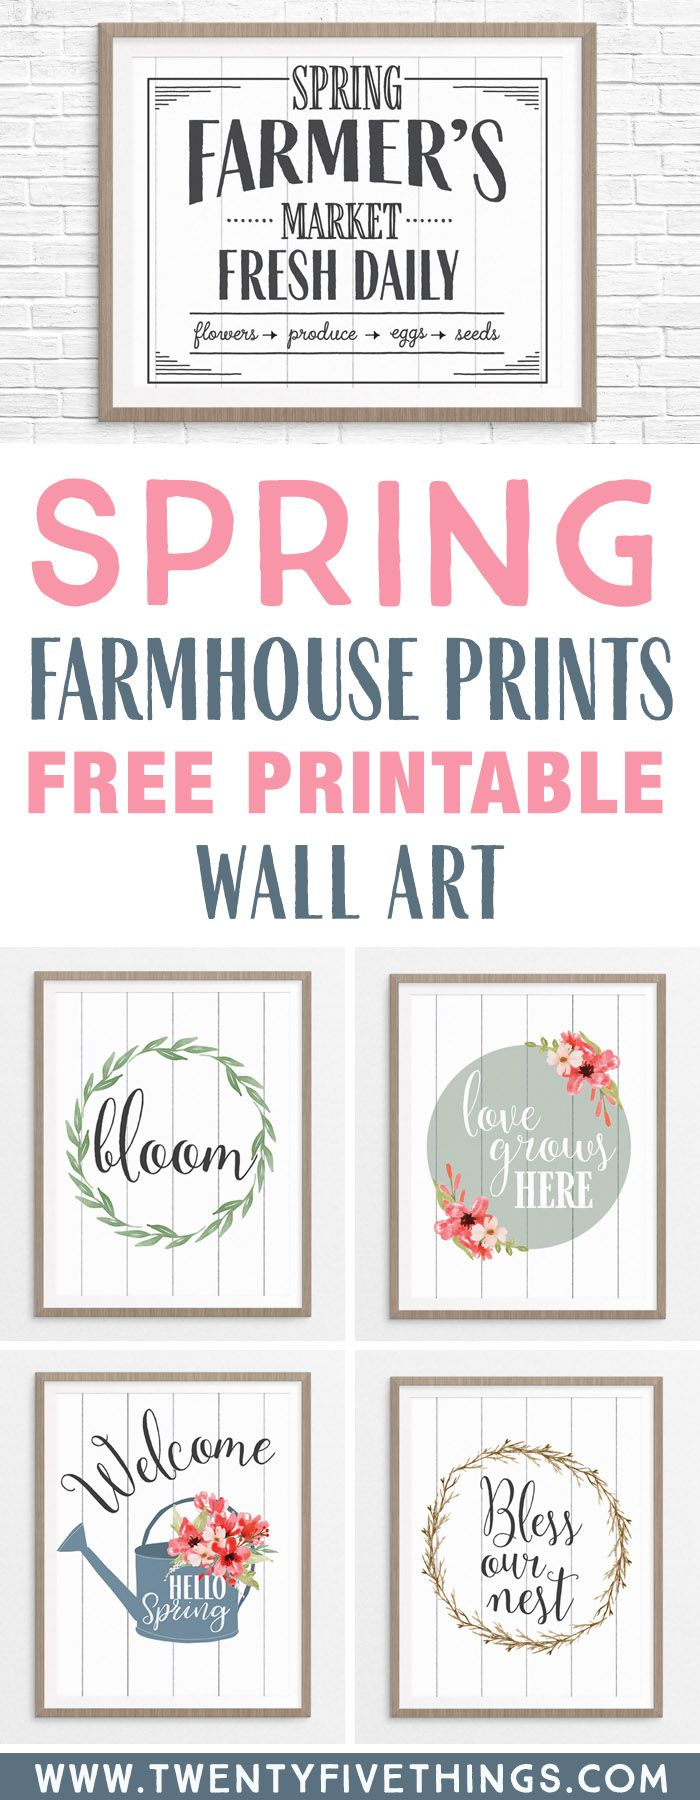 I can't wait to print these free printable Spring Wall Art farmhouse style prints for my home. My walls need a new Spring makeover! My favorite is the Hello Spring watering can print.